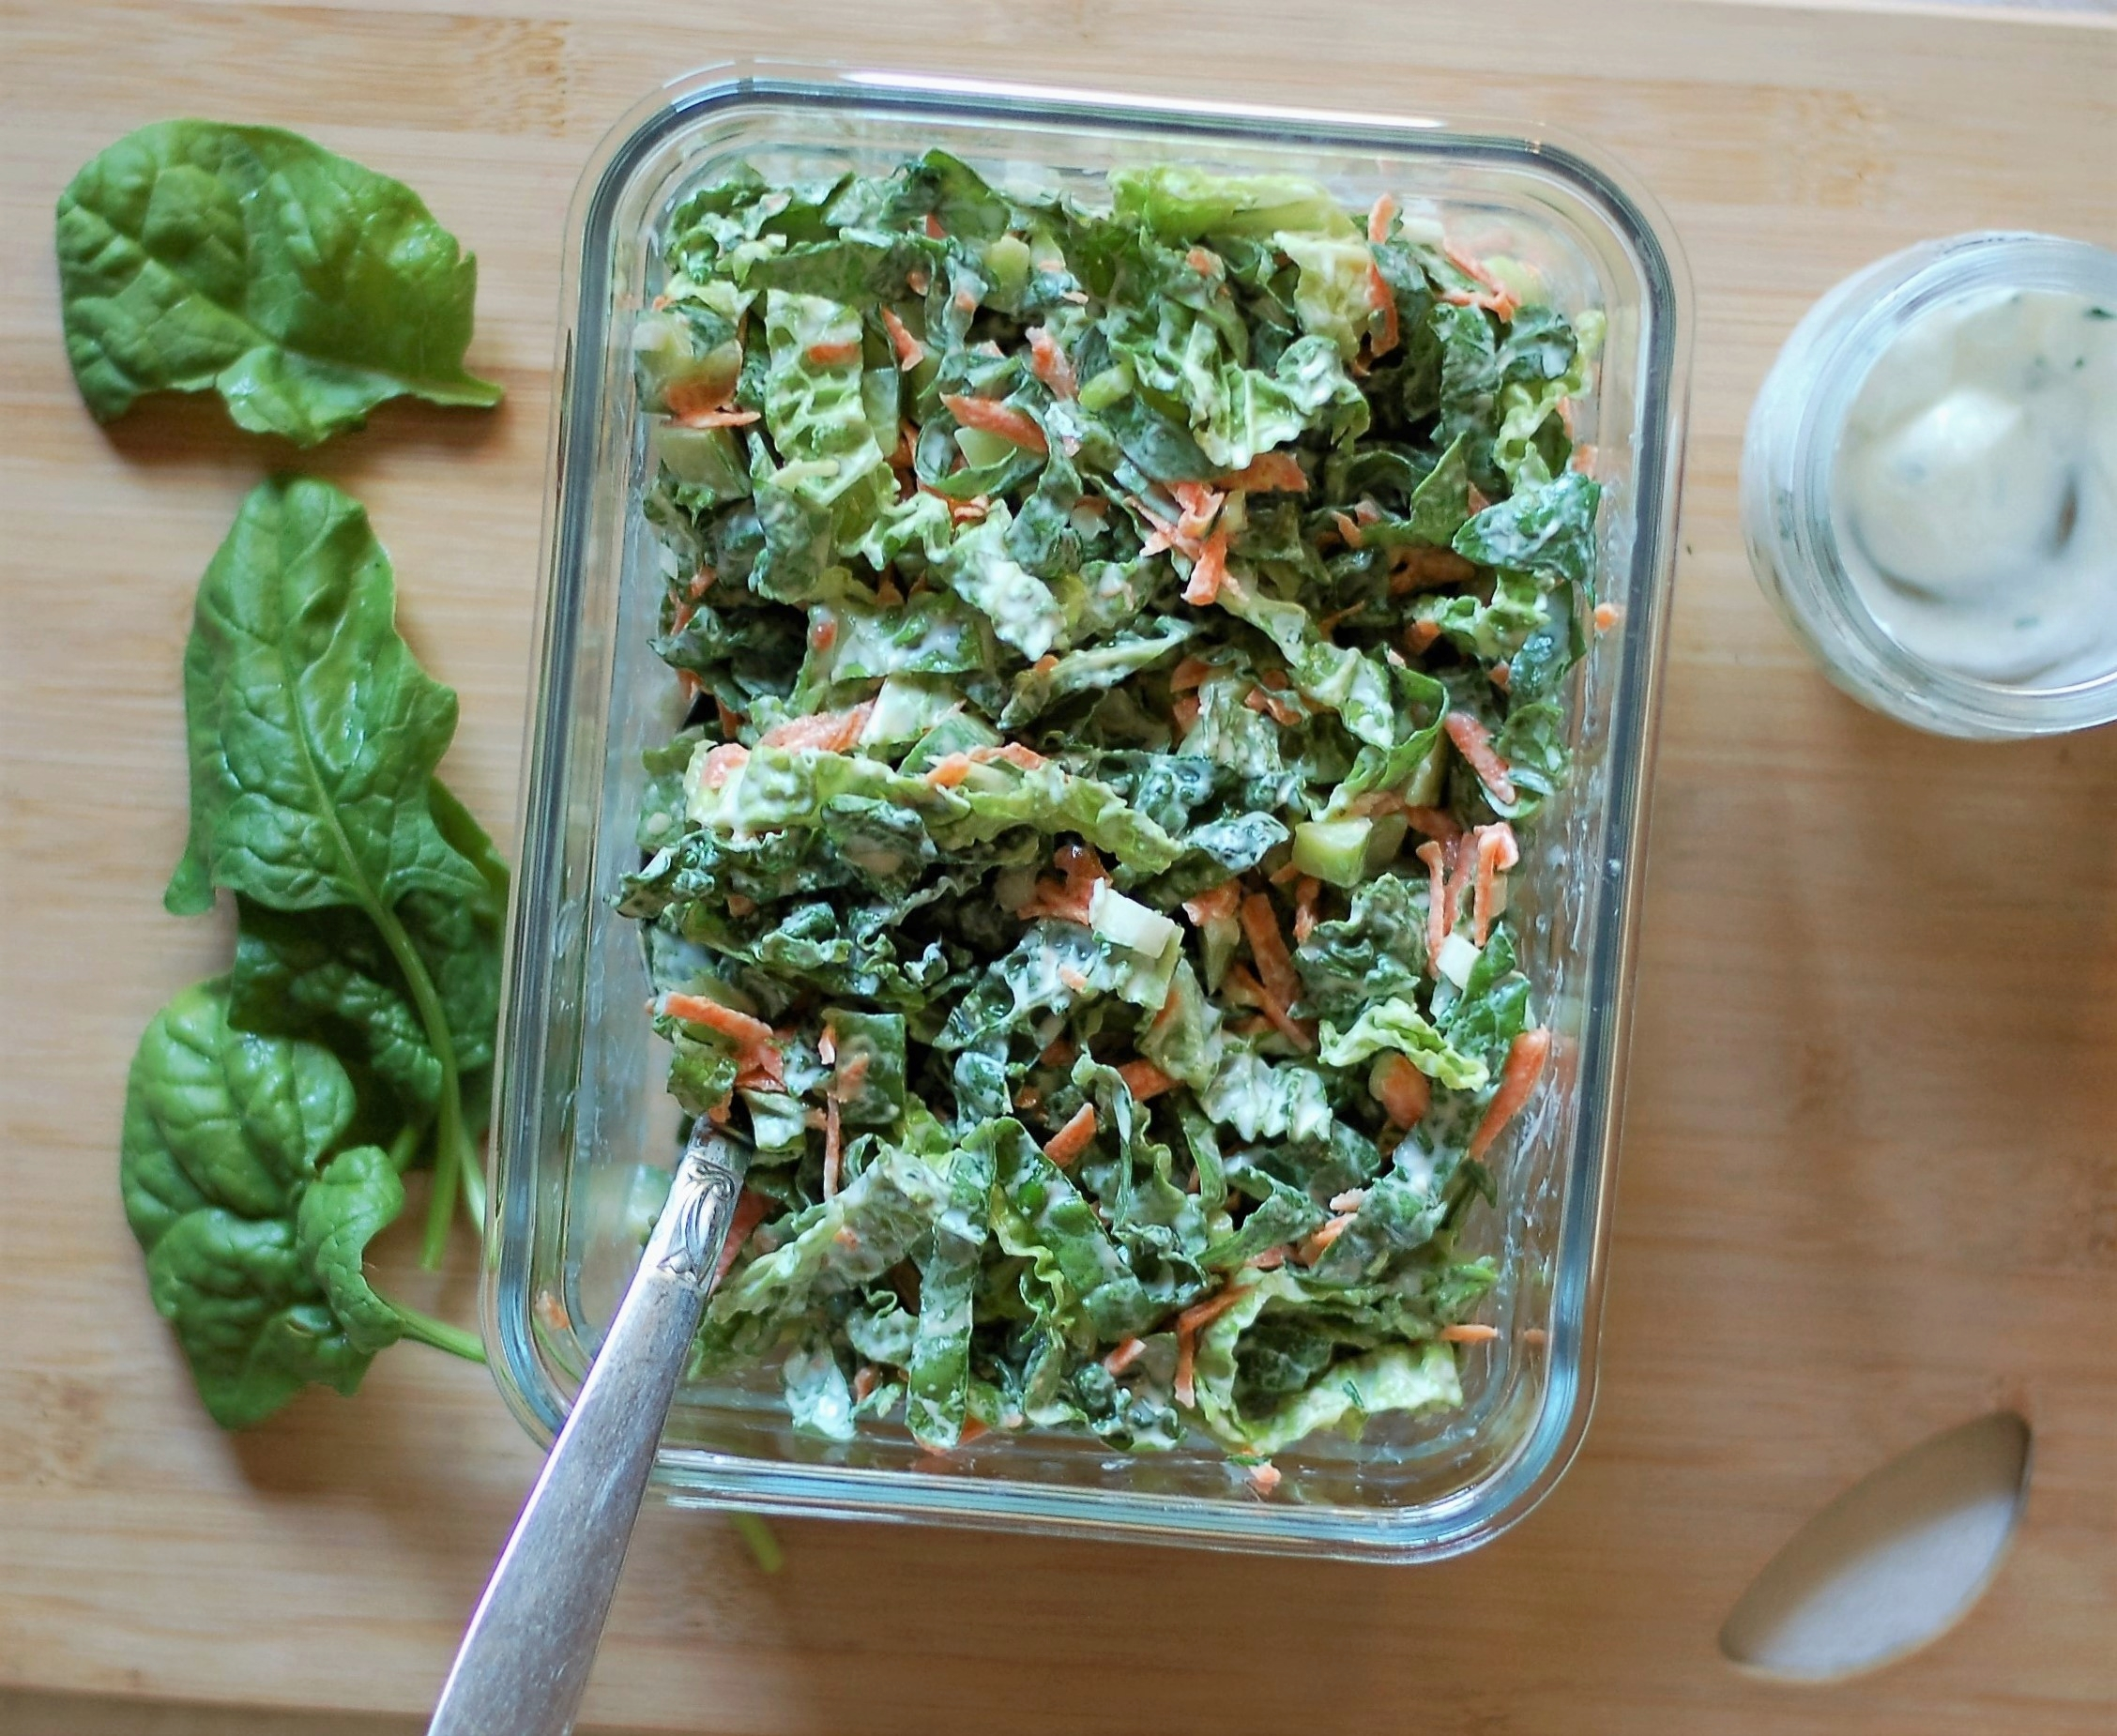 Spinach Slaw with Yogurt Dressing